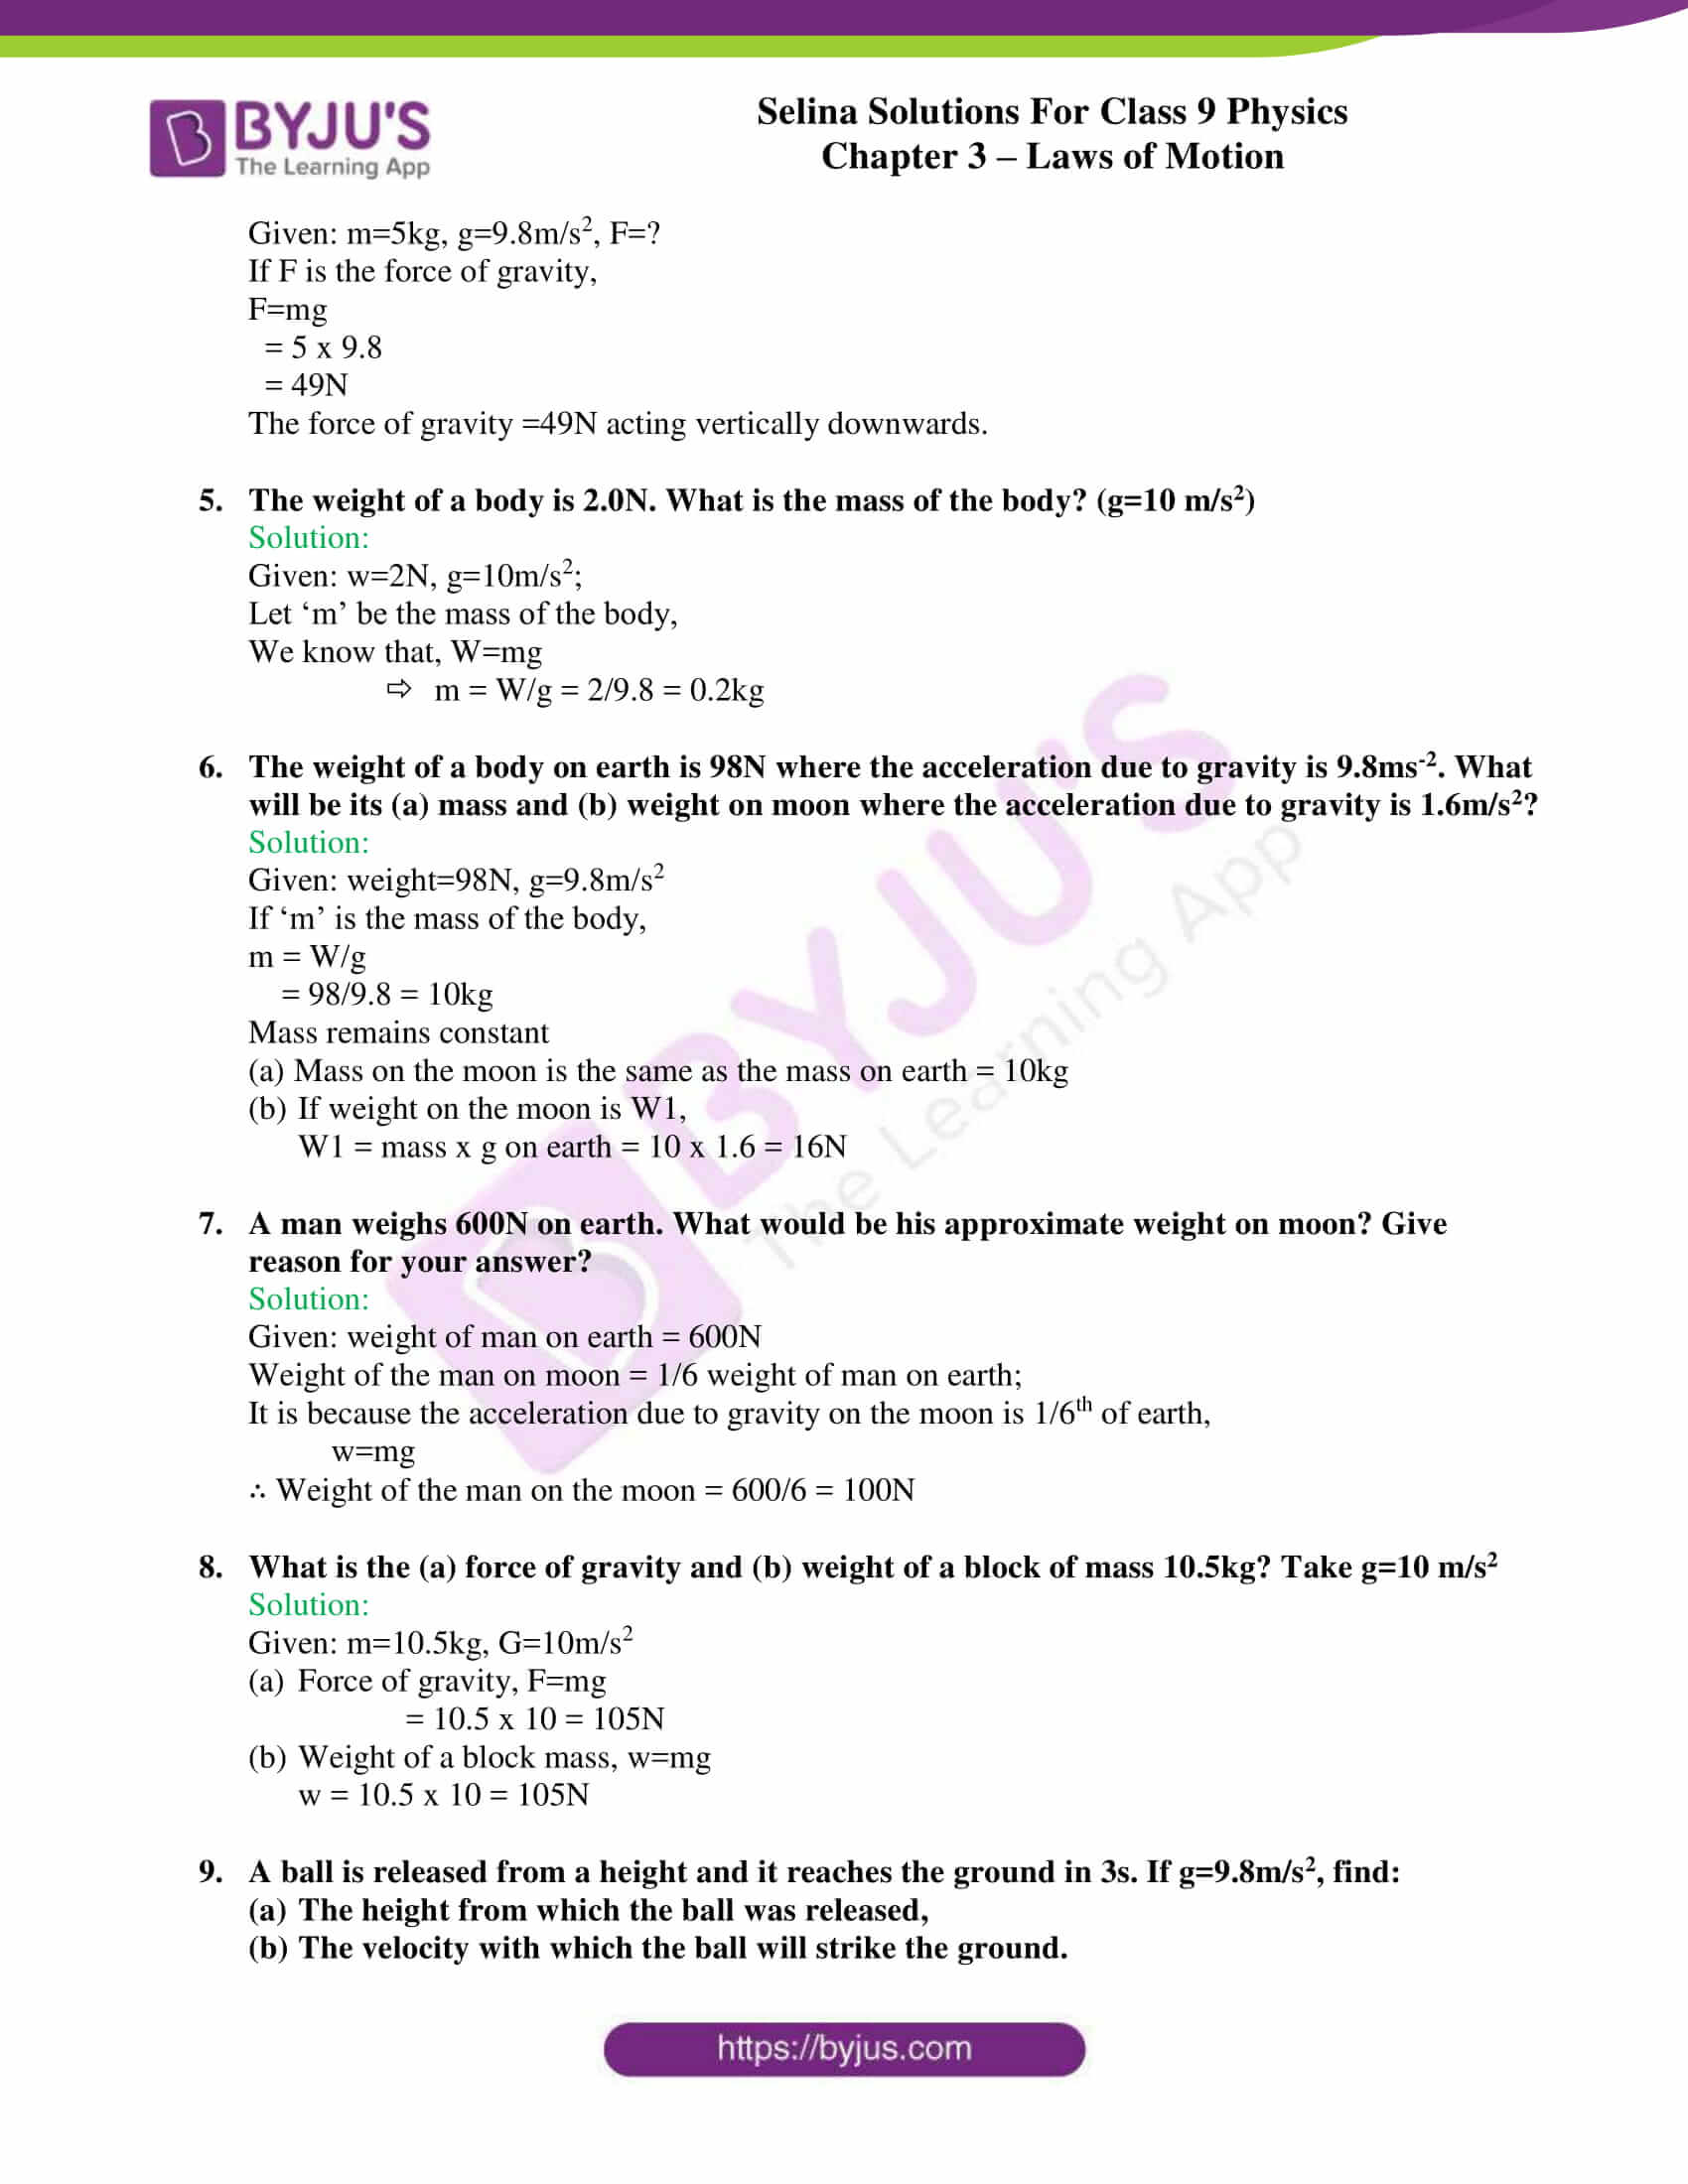 selina solutions class 9 physics chapter 3 Laws of Motion part 32